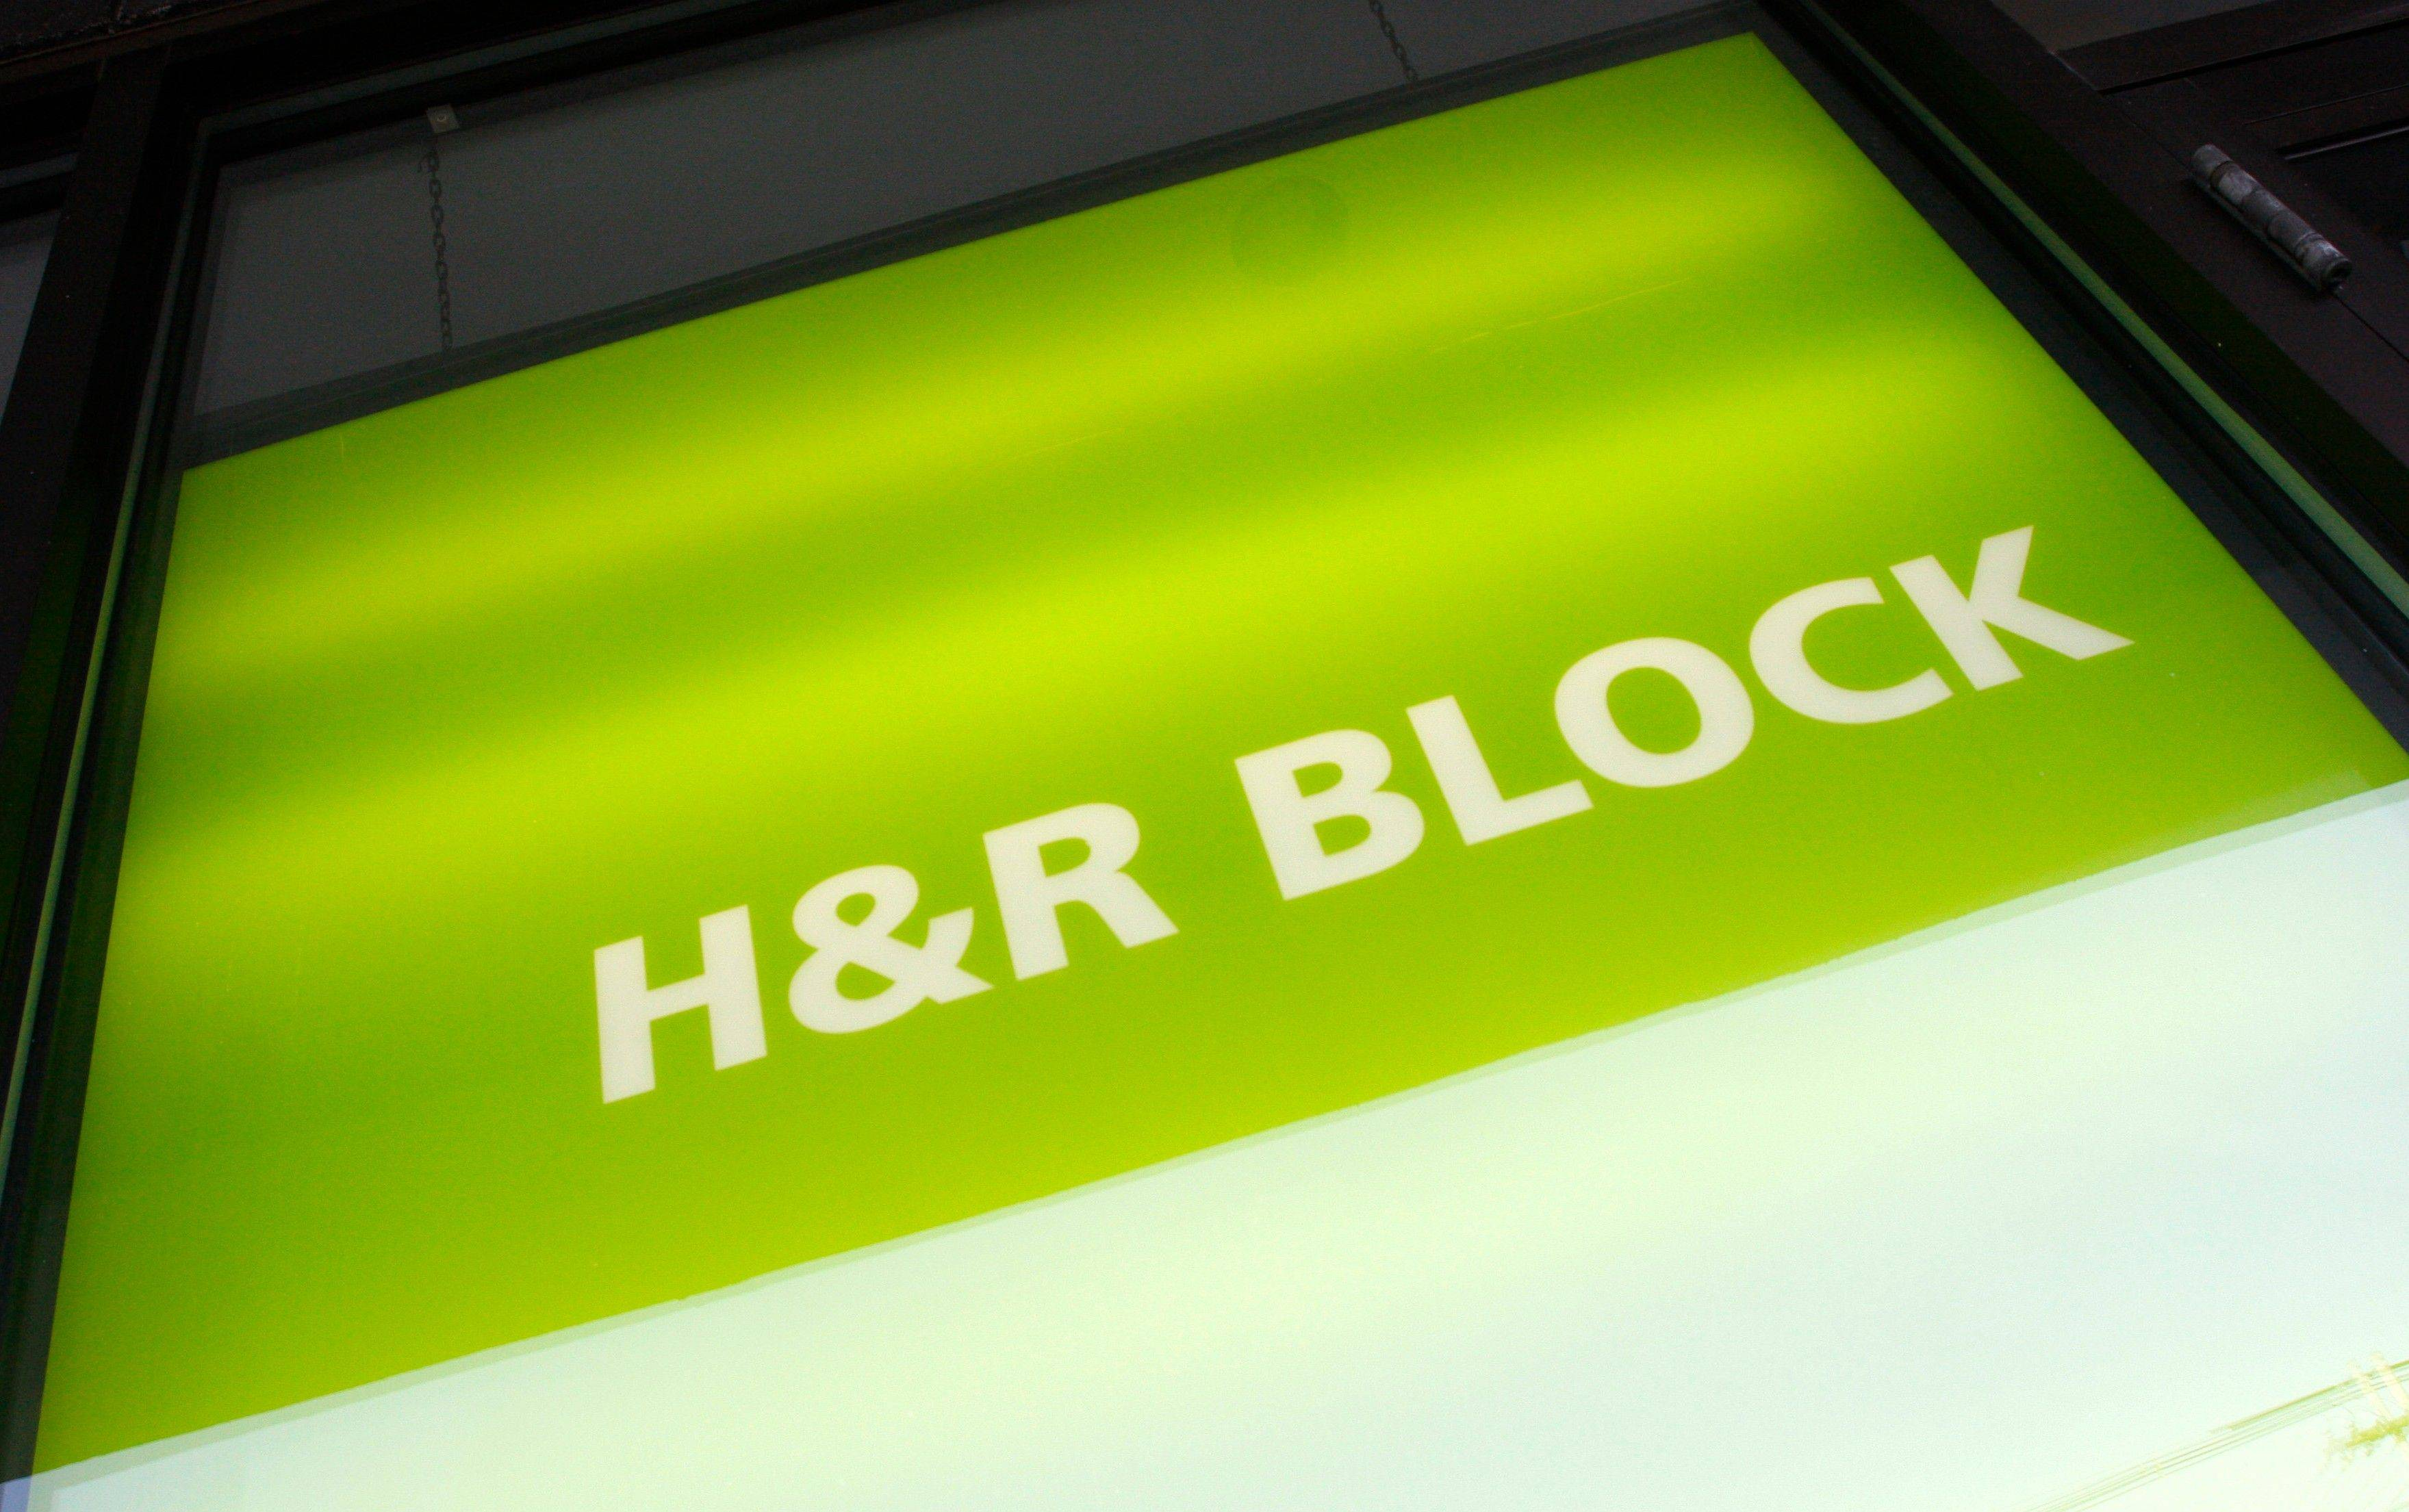 Asign designates an H&R Block tax preparation location in Marlborough, Mass.